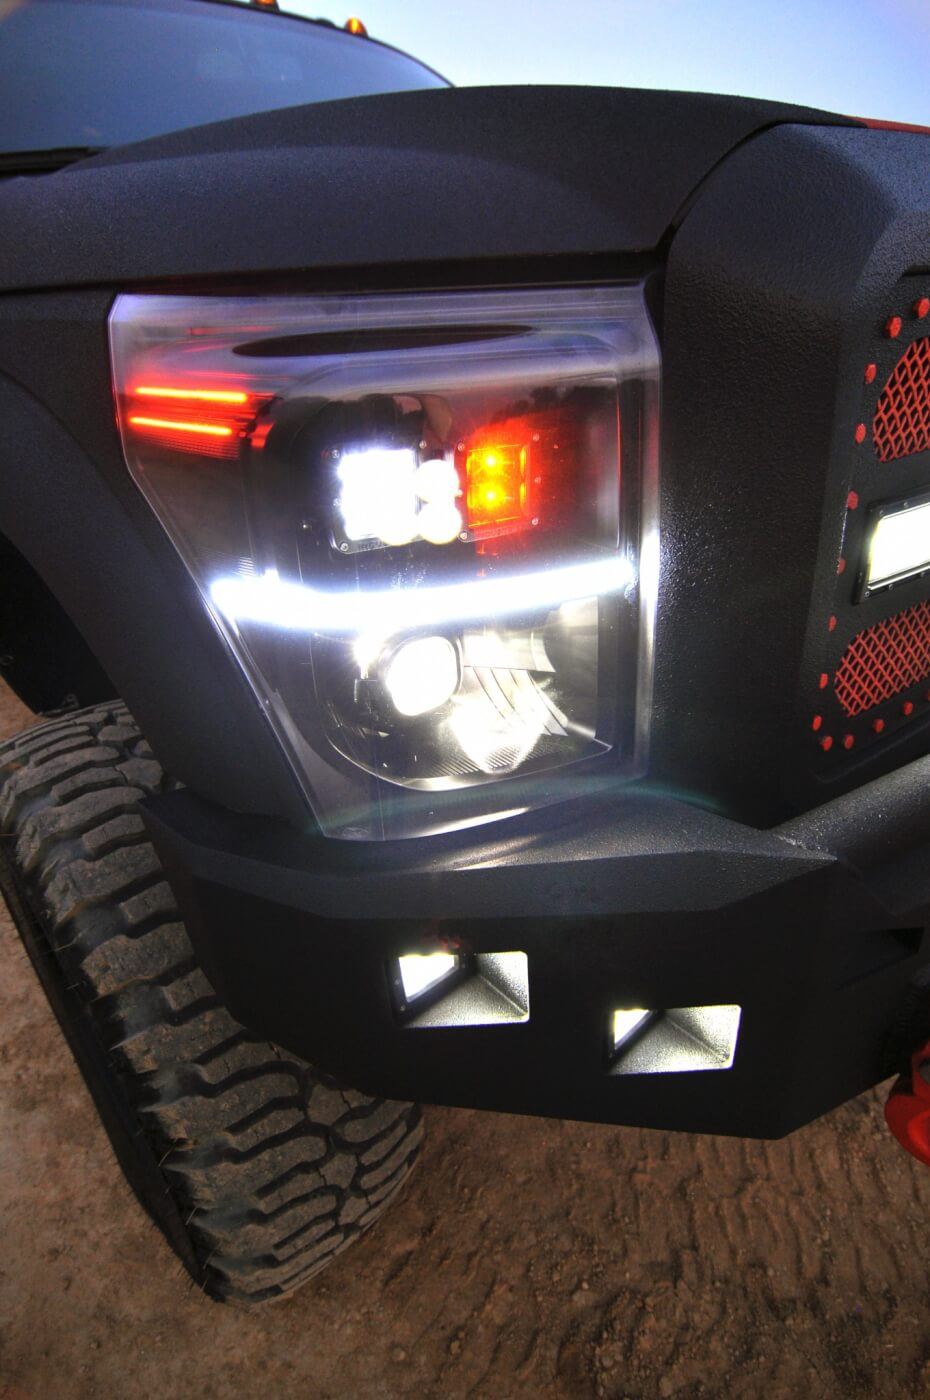 EcoTint custom built a set of headlights for Keaton's truck. They're painted to match and feature Diesel Power Gear LEDs in place of the stock incandescent lights.